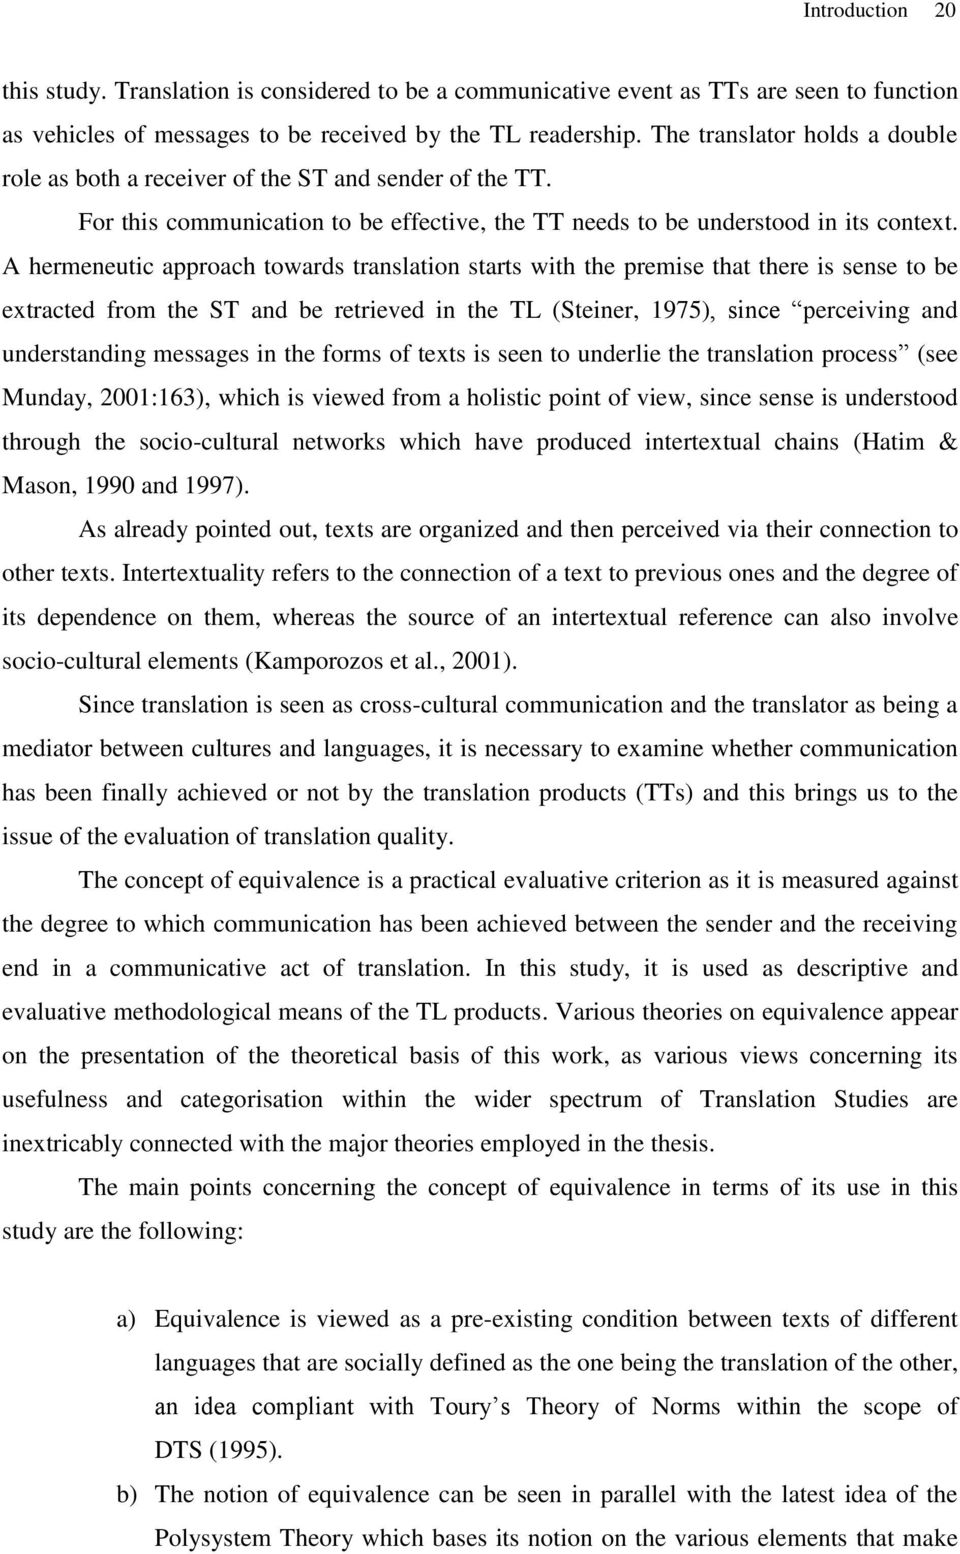 A hermeneutic approach towards translation starts with the premise that there is sense to be extracted from the ST and be retrieved in the TL (Steiner, 1975), since perceiving and understanding